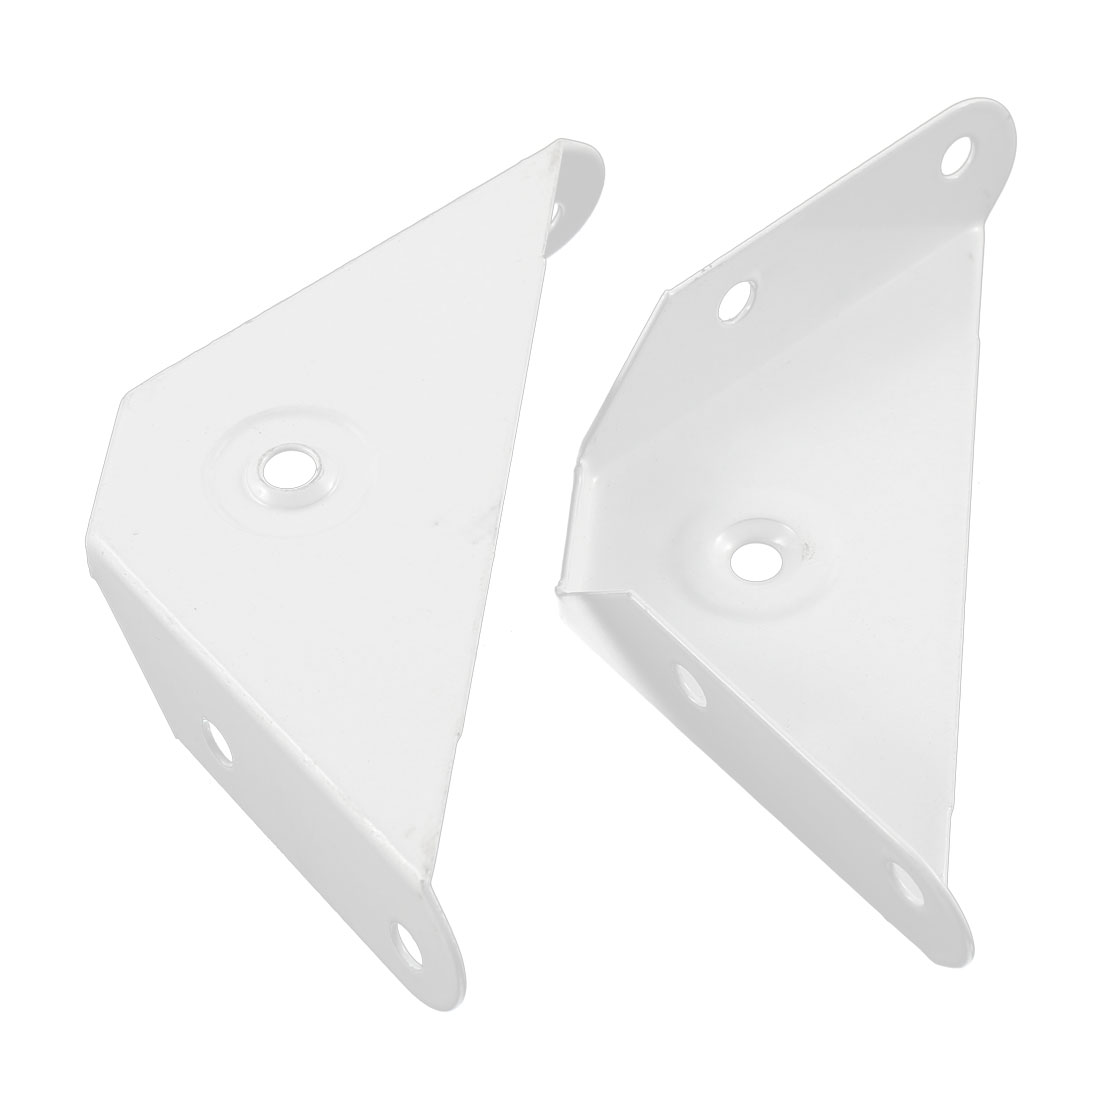 Metal Shelf Corner Brace Cabniet Leg Fasterner Triangle Angle Bracket White 2Pcs